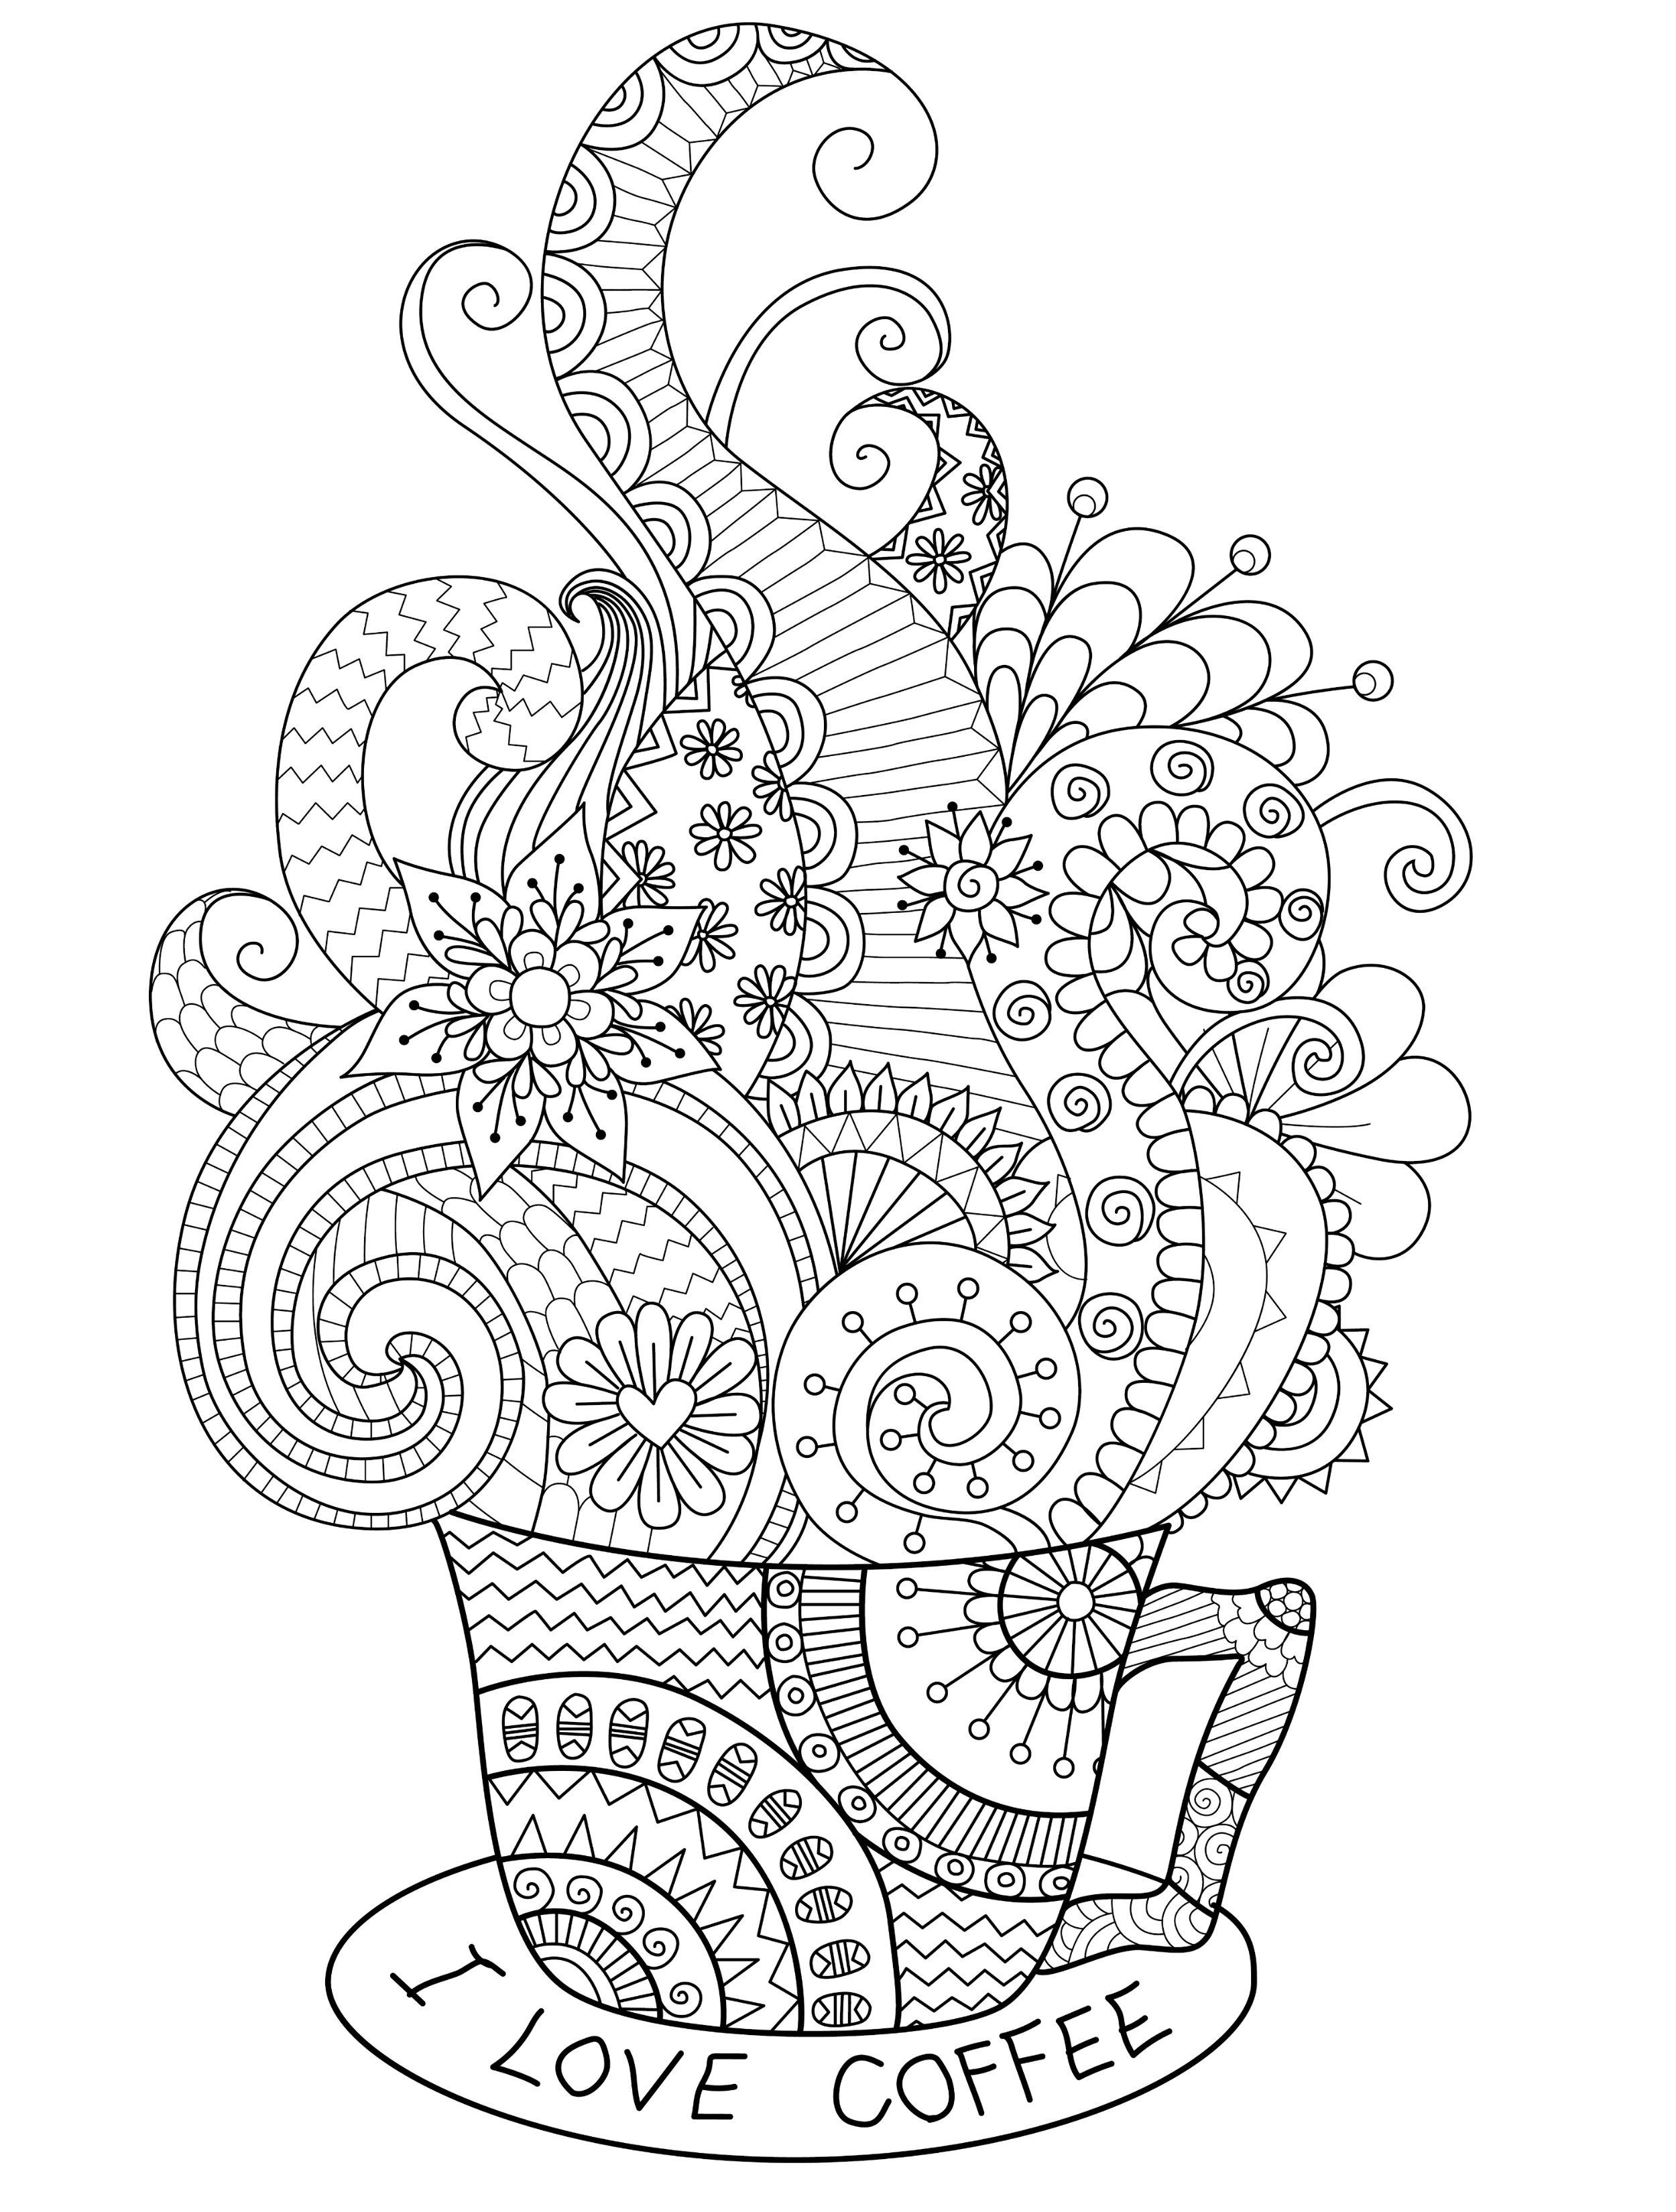 I love coffee adult coloring page you can print for free